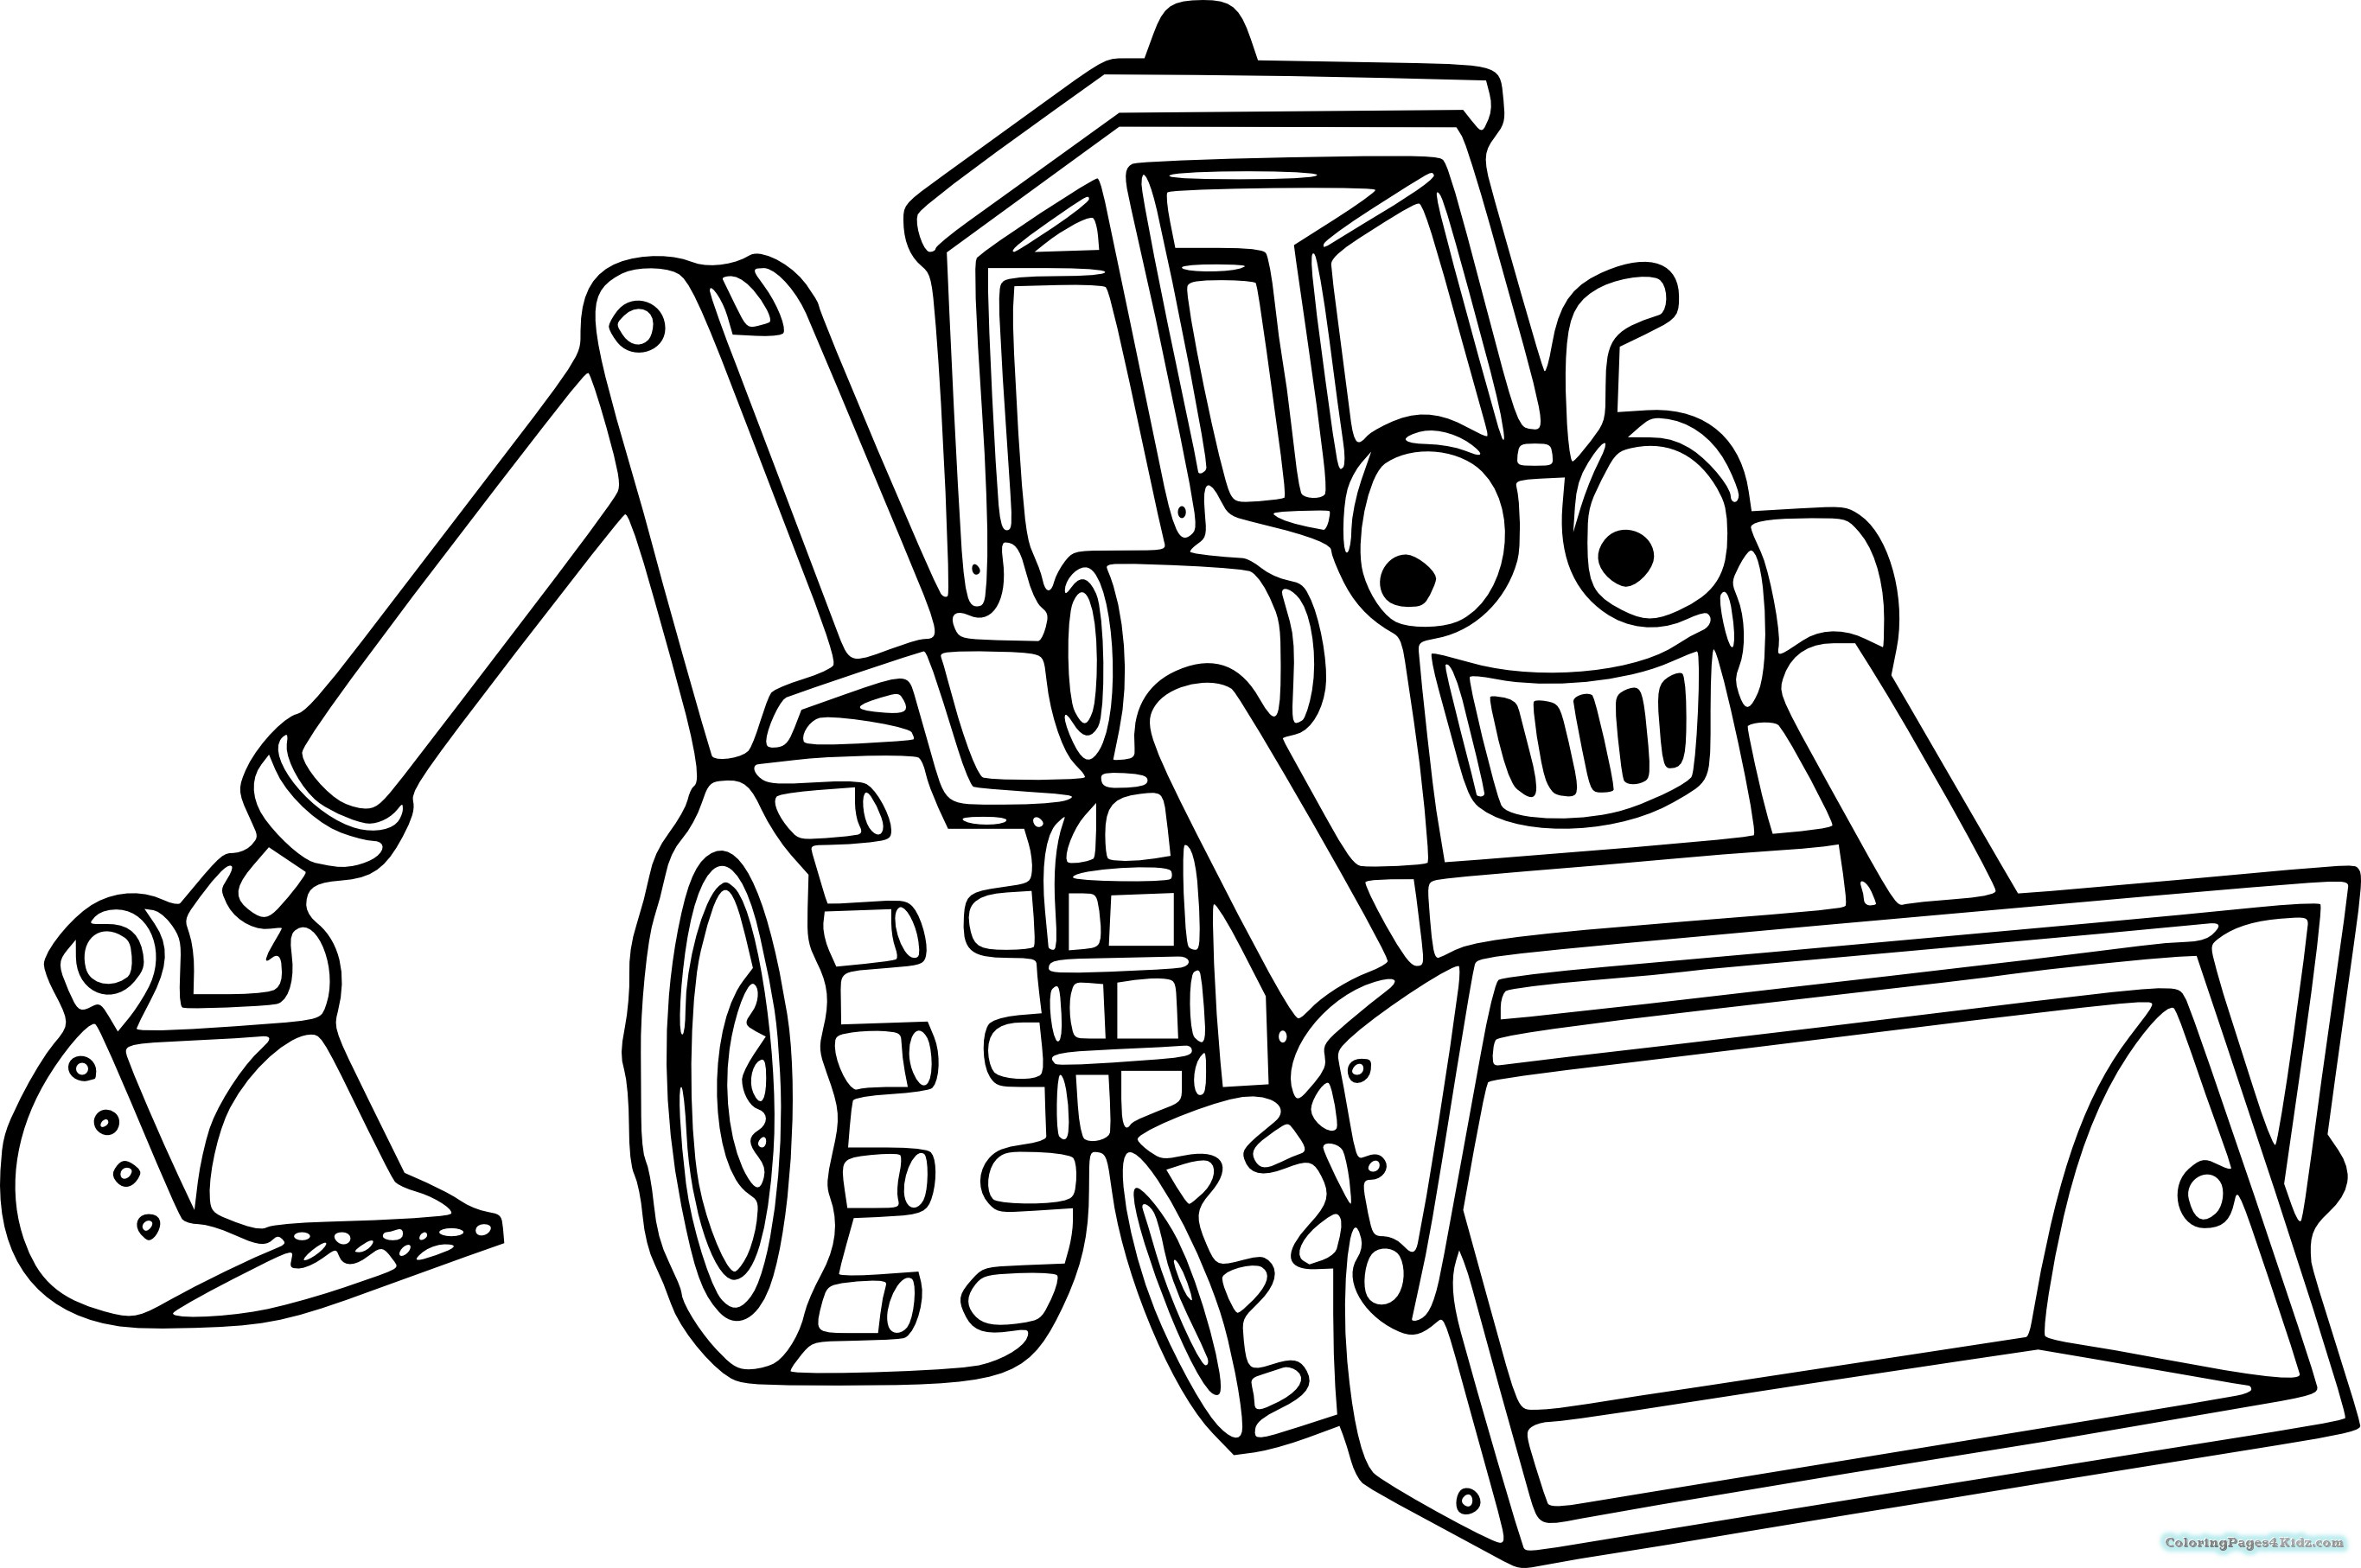 tractor colouring pictures tractor drawing for kids at getdrawings free download colouring tractor pictures